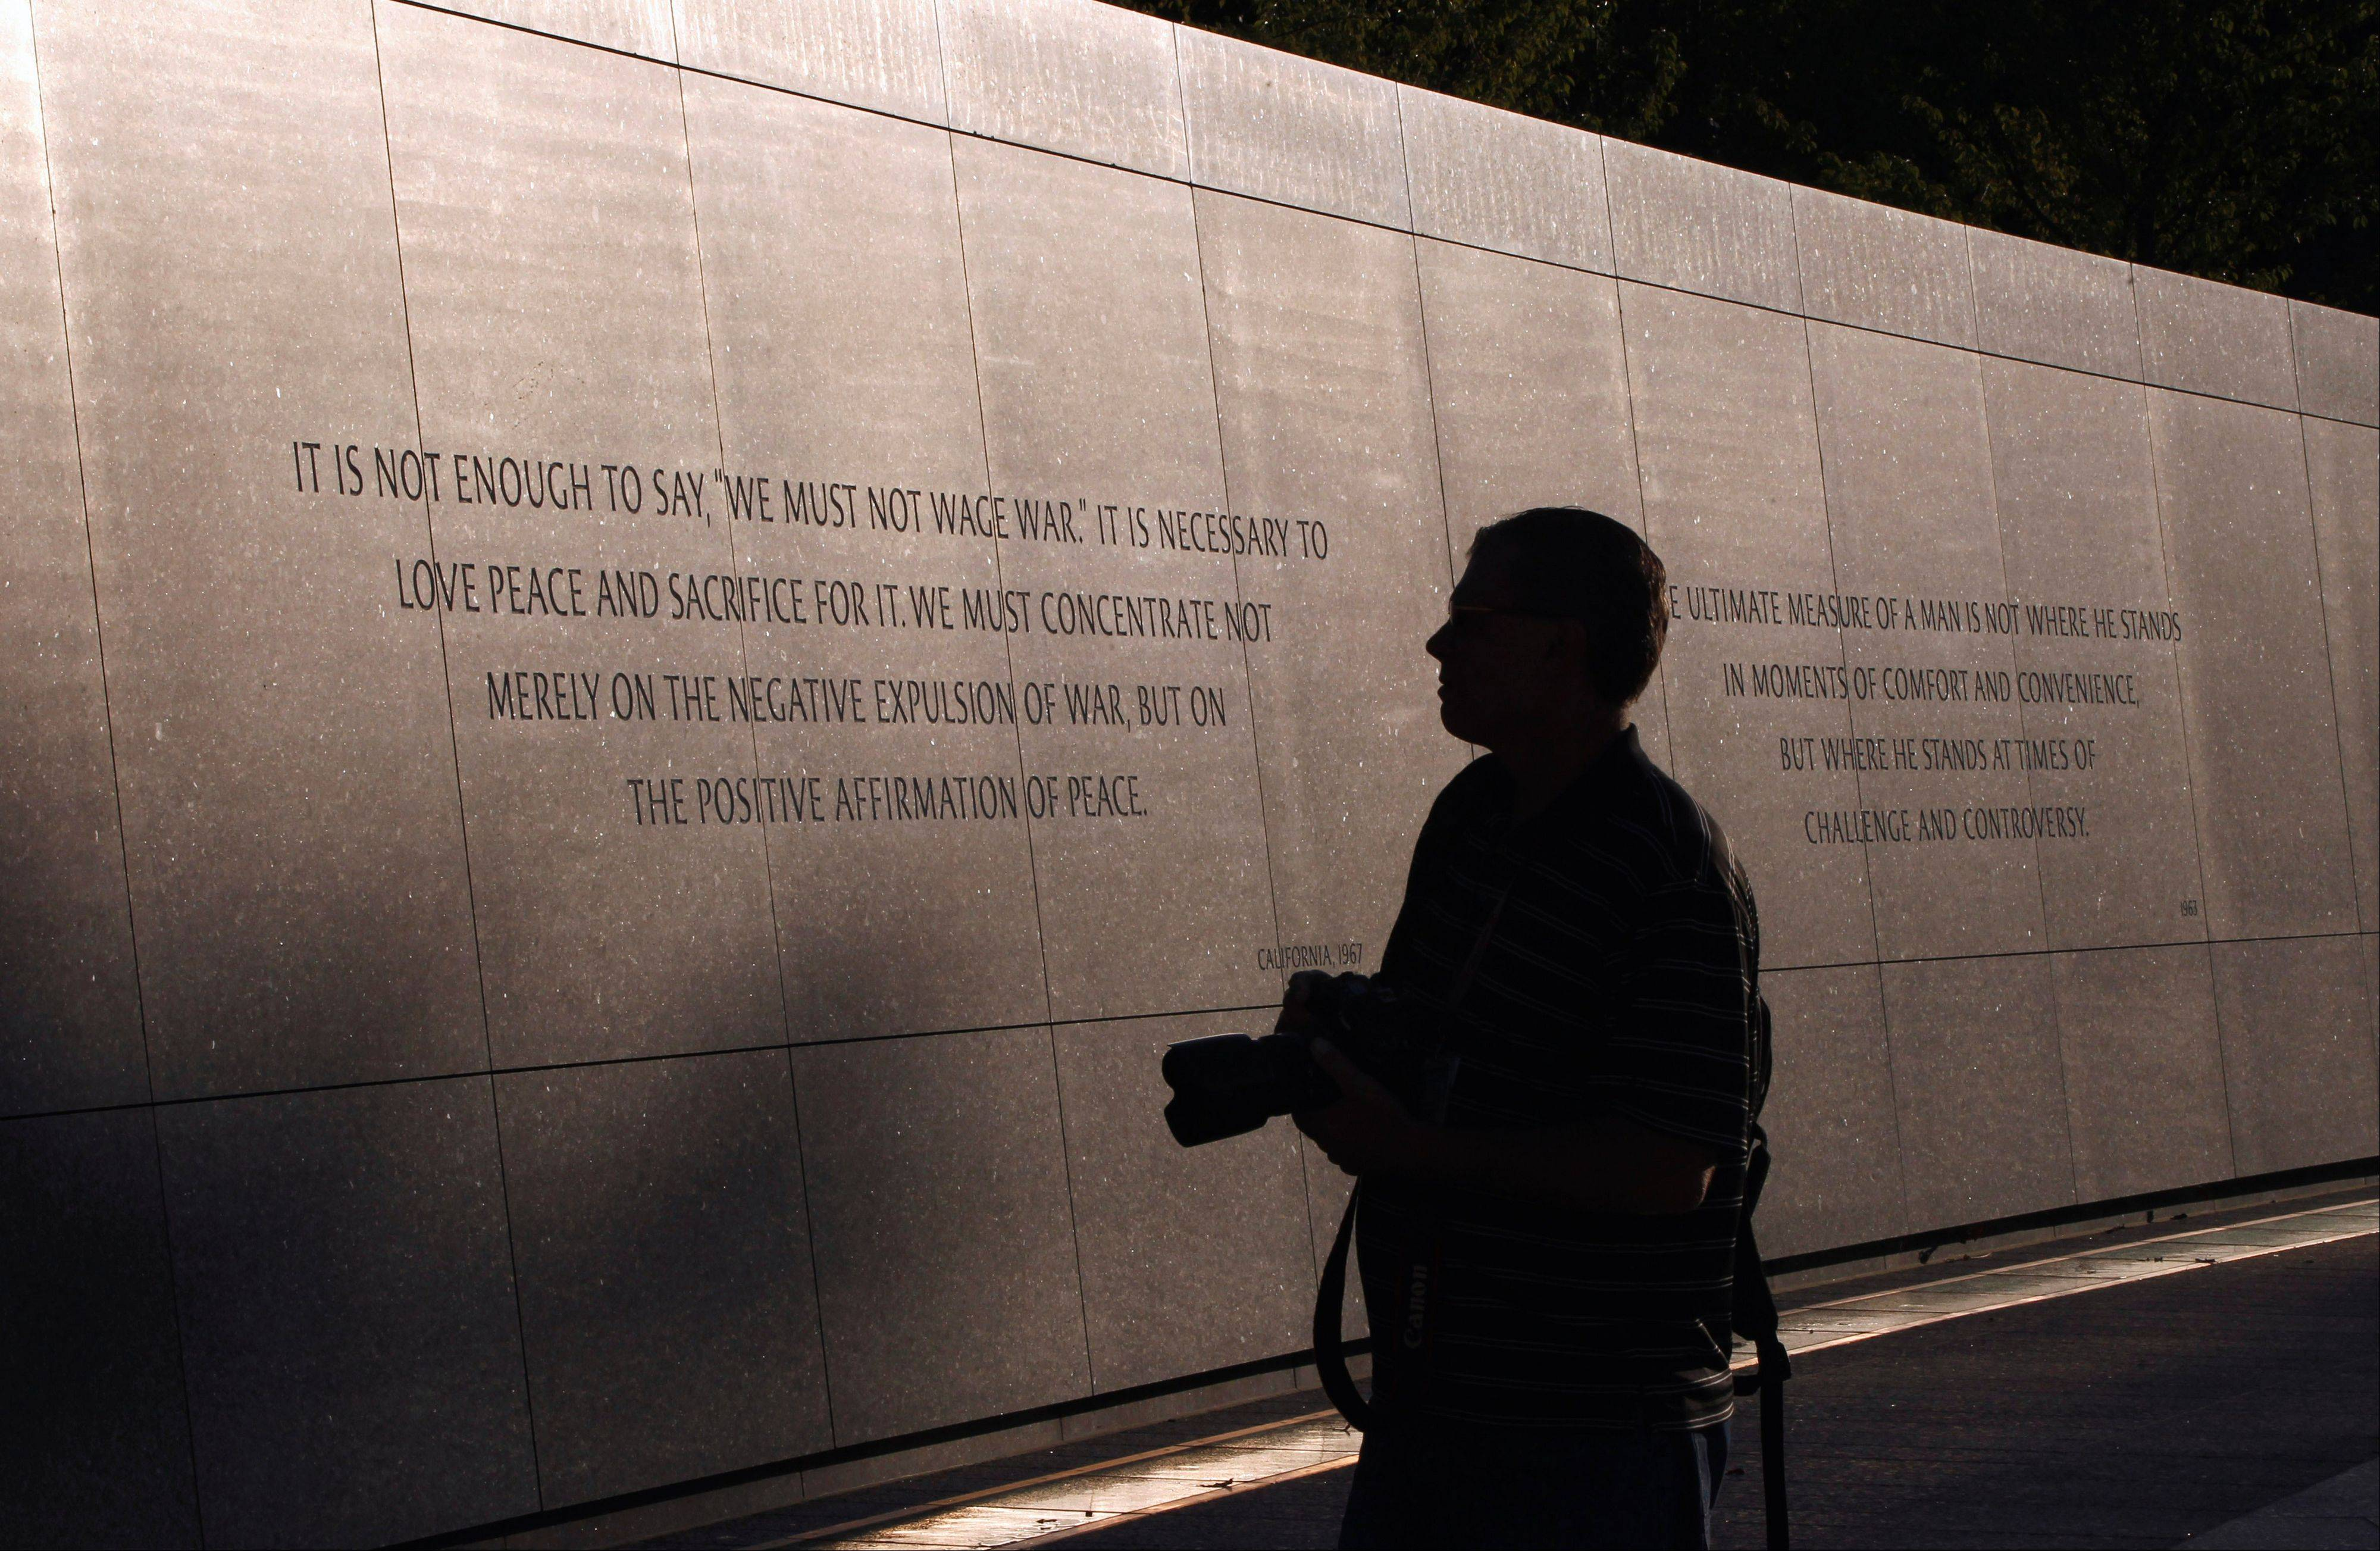 The words of Martin Luther King, Jr., are seen on the walls of the Martin Luther King, Jr. Memorial ahead of its dedication this weekend, Monday, Aug. 22, 2011, in Washington.